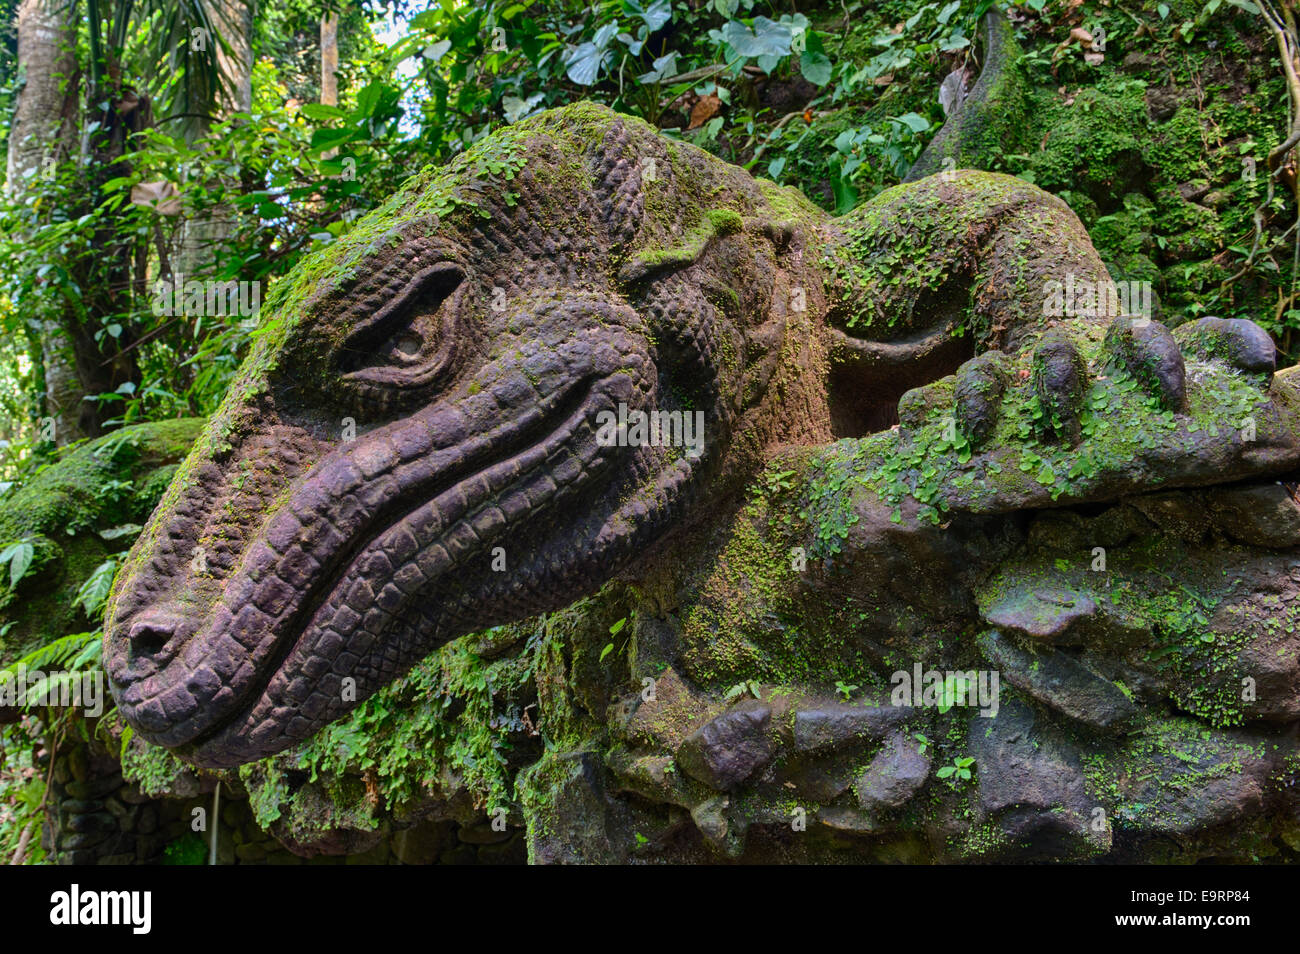 Stone carving of a komodo dragon sacred monkey forest